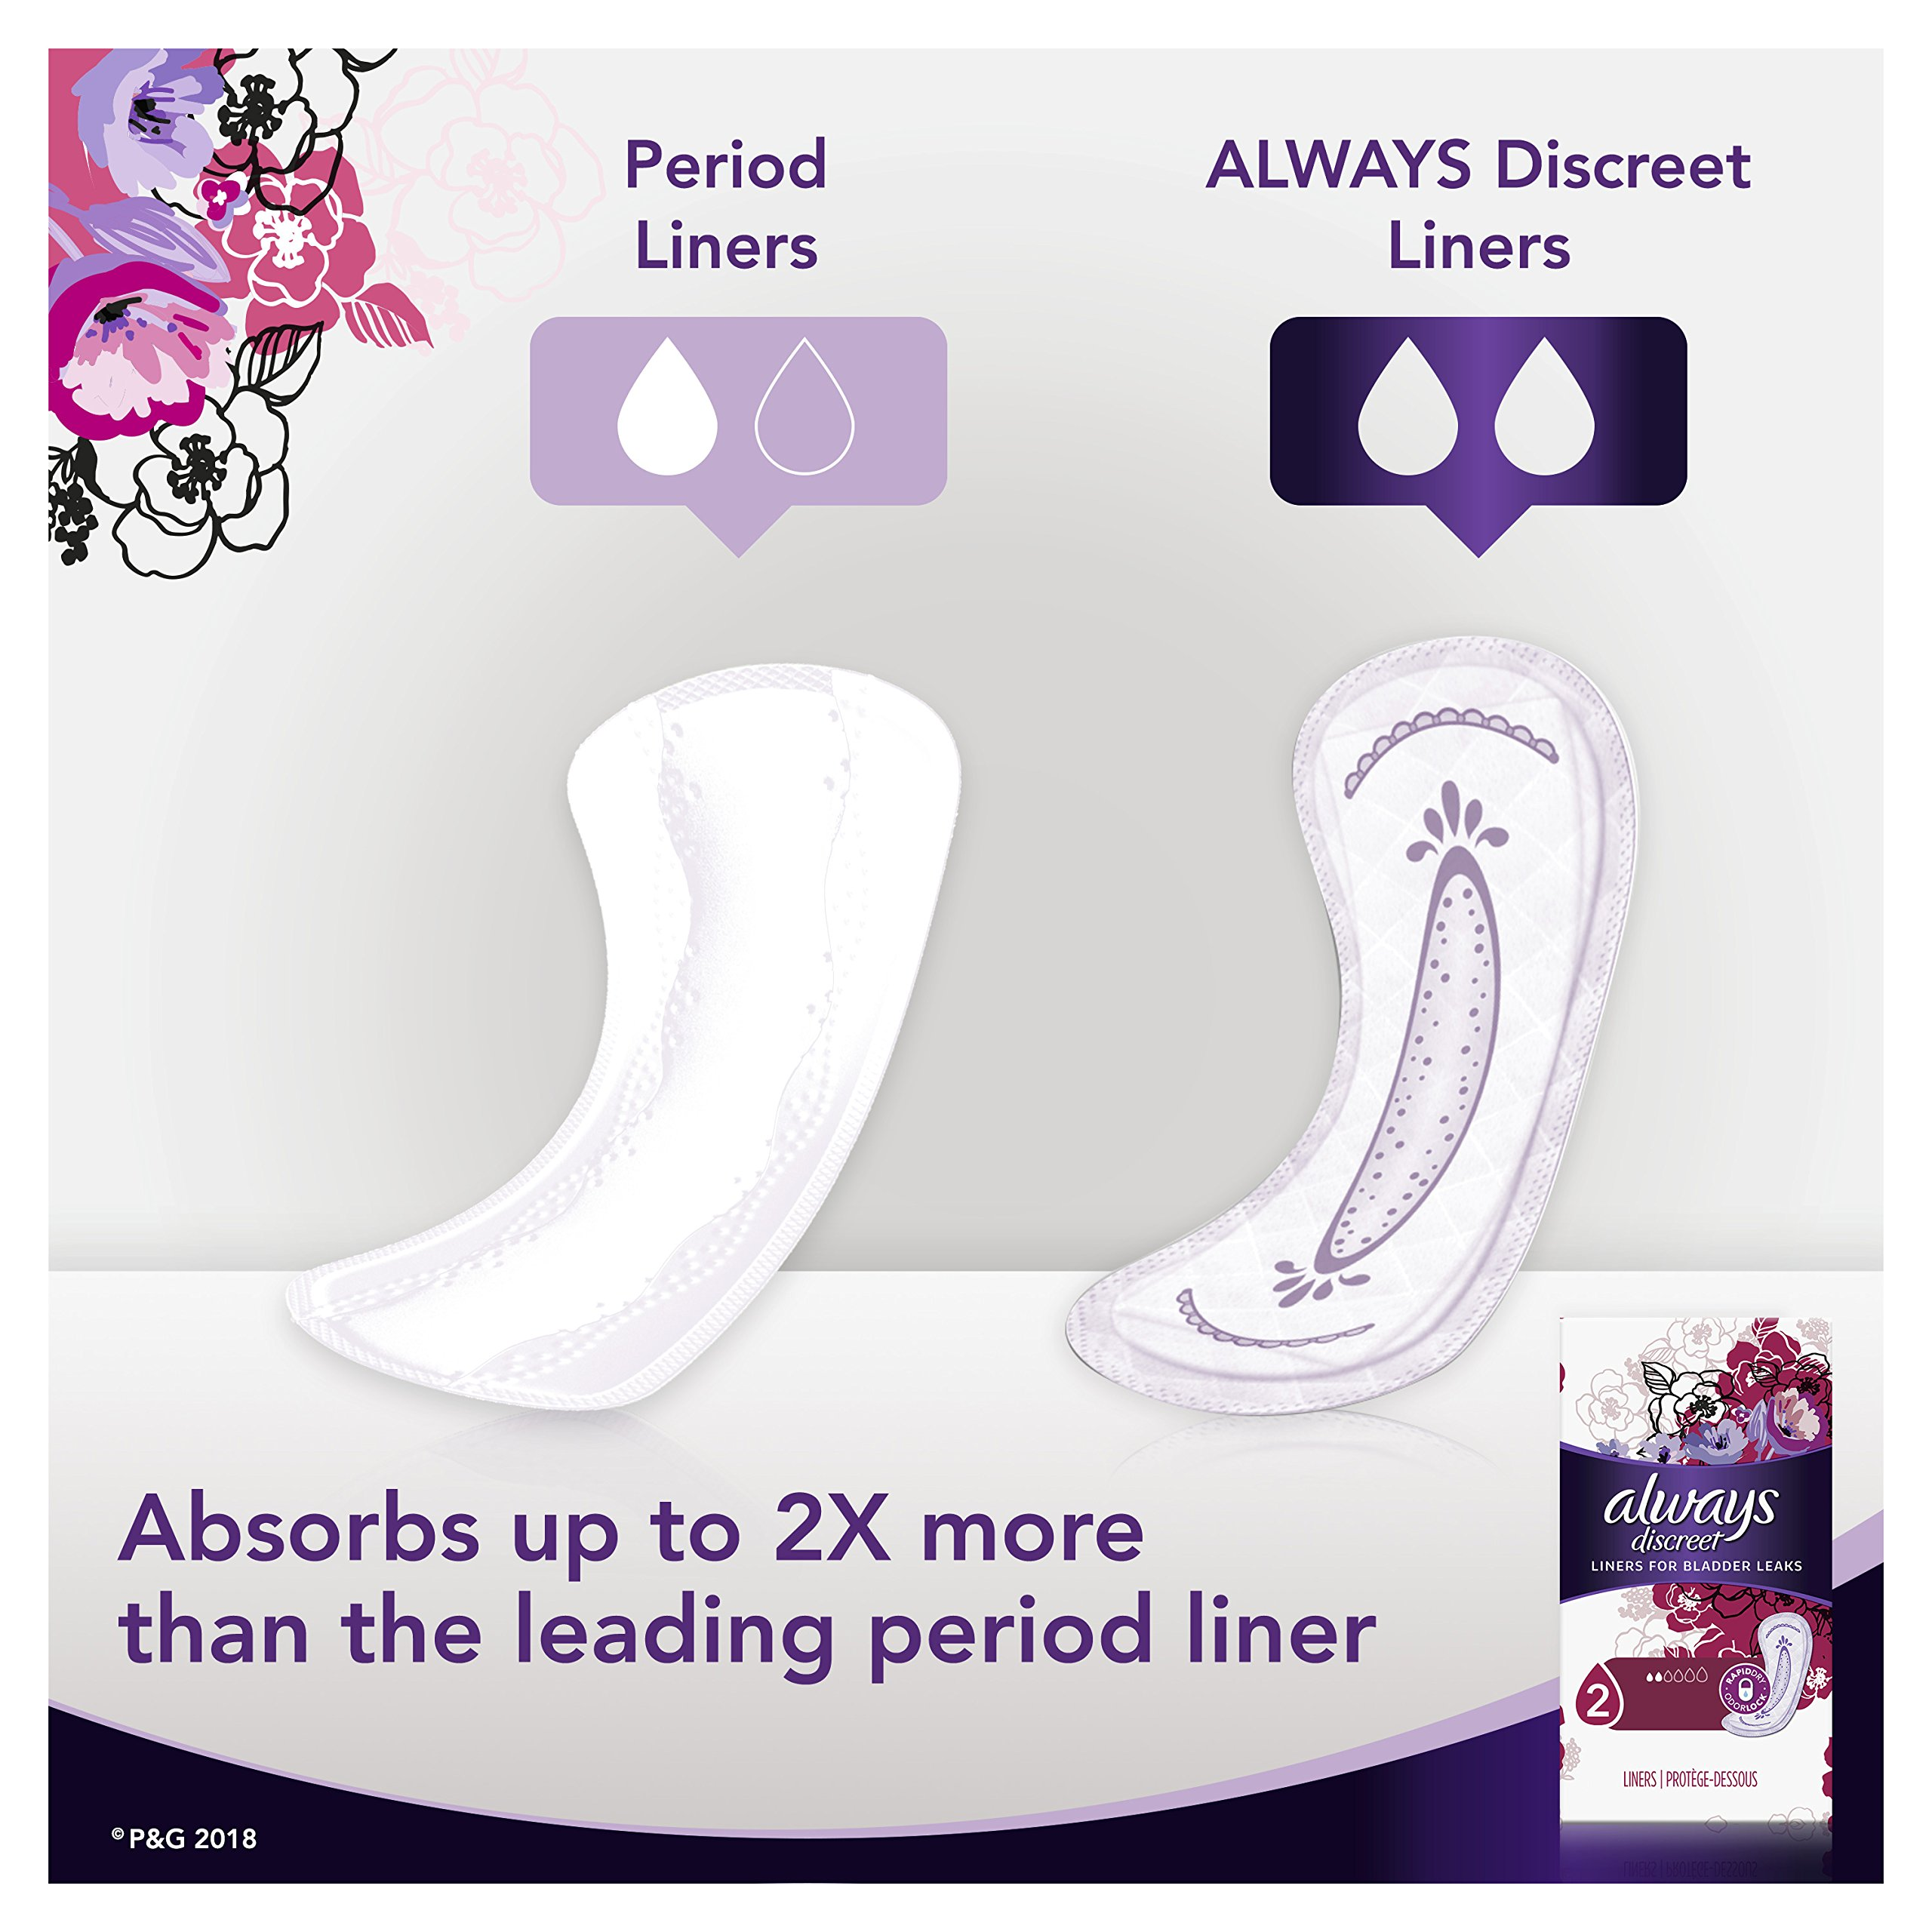 Always Discreet, Incontinence Liners, Very Light, Long Length, 44 Count - Pack of 3 (132 Total Count) by Always Discreet (Image #9)